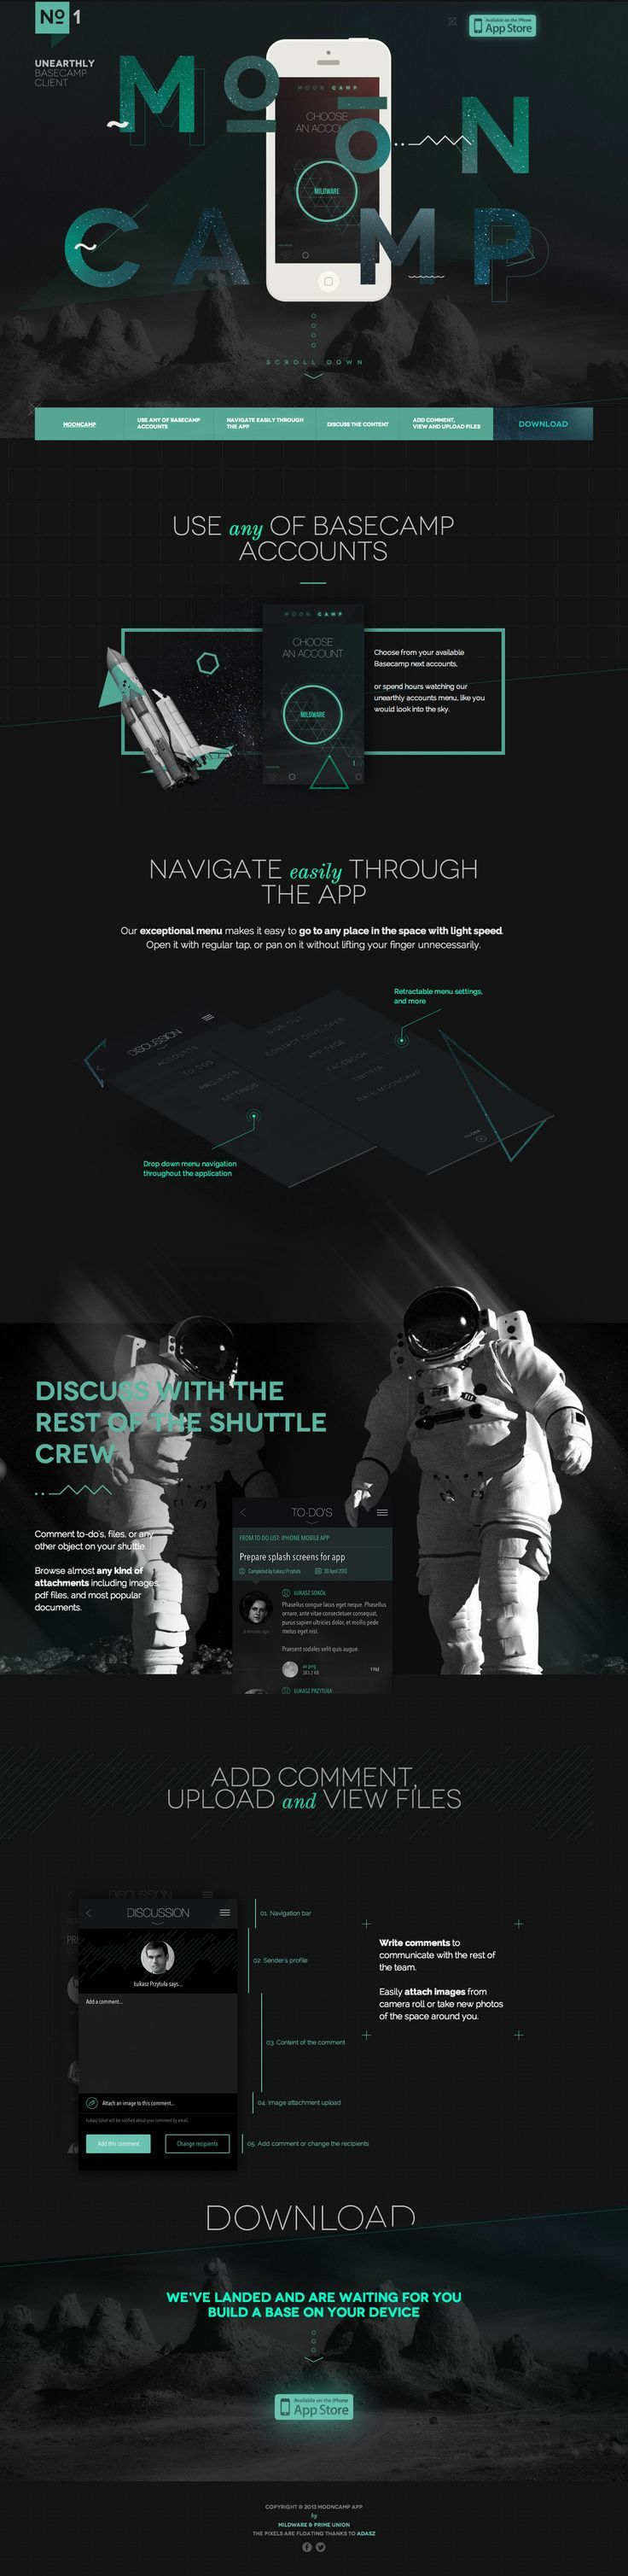 Space webdesign site